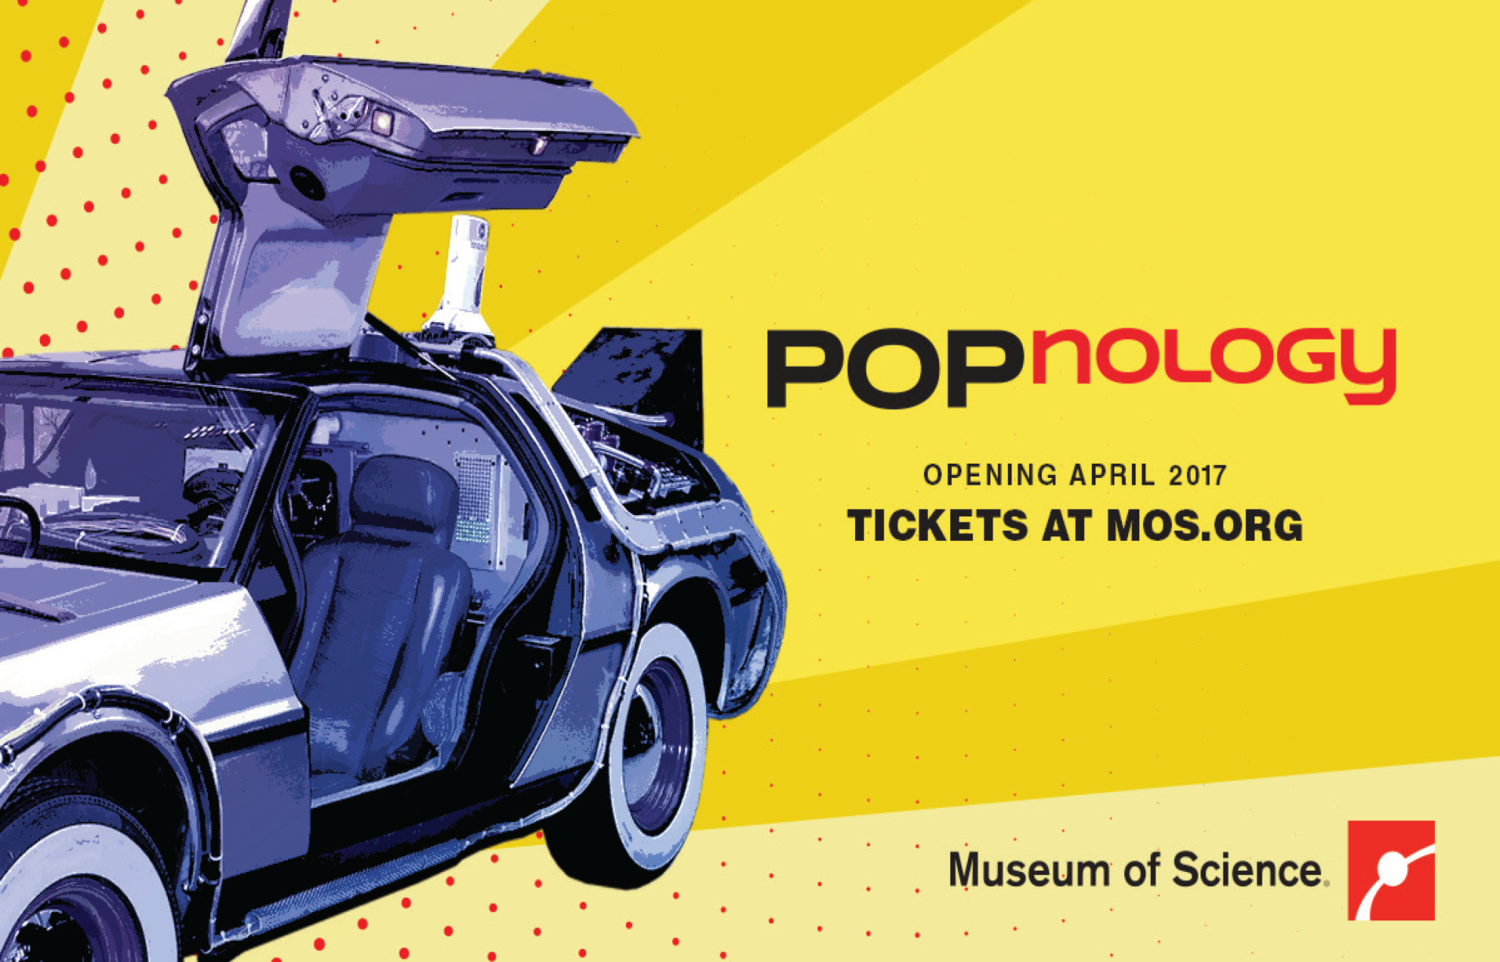 POPnology To Make Grand Opening at Boston Museum of Science